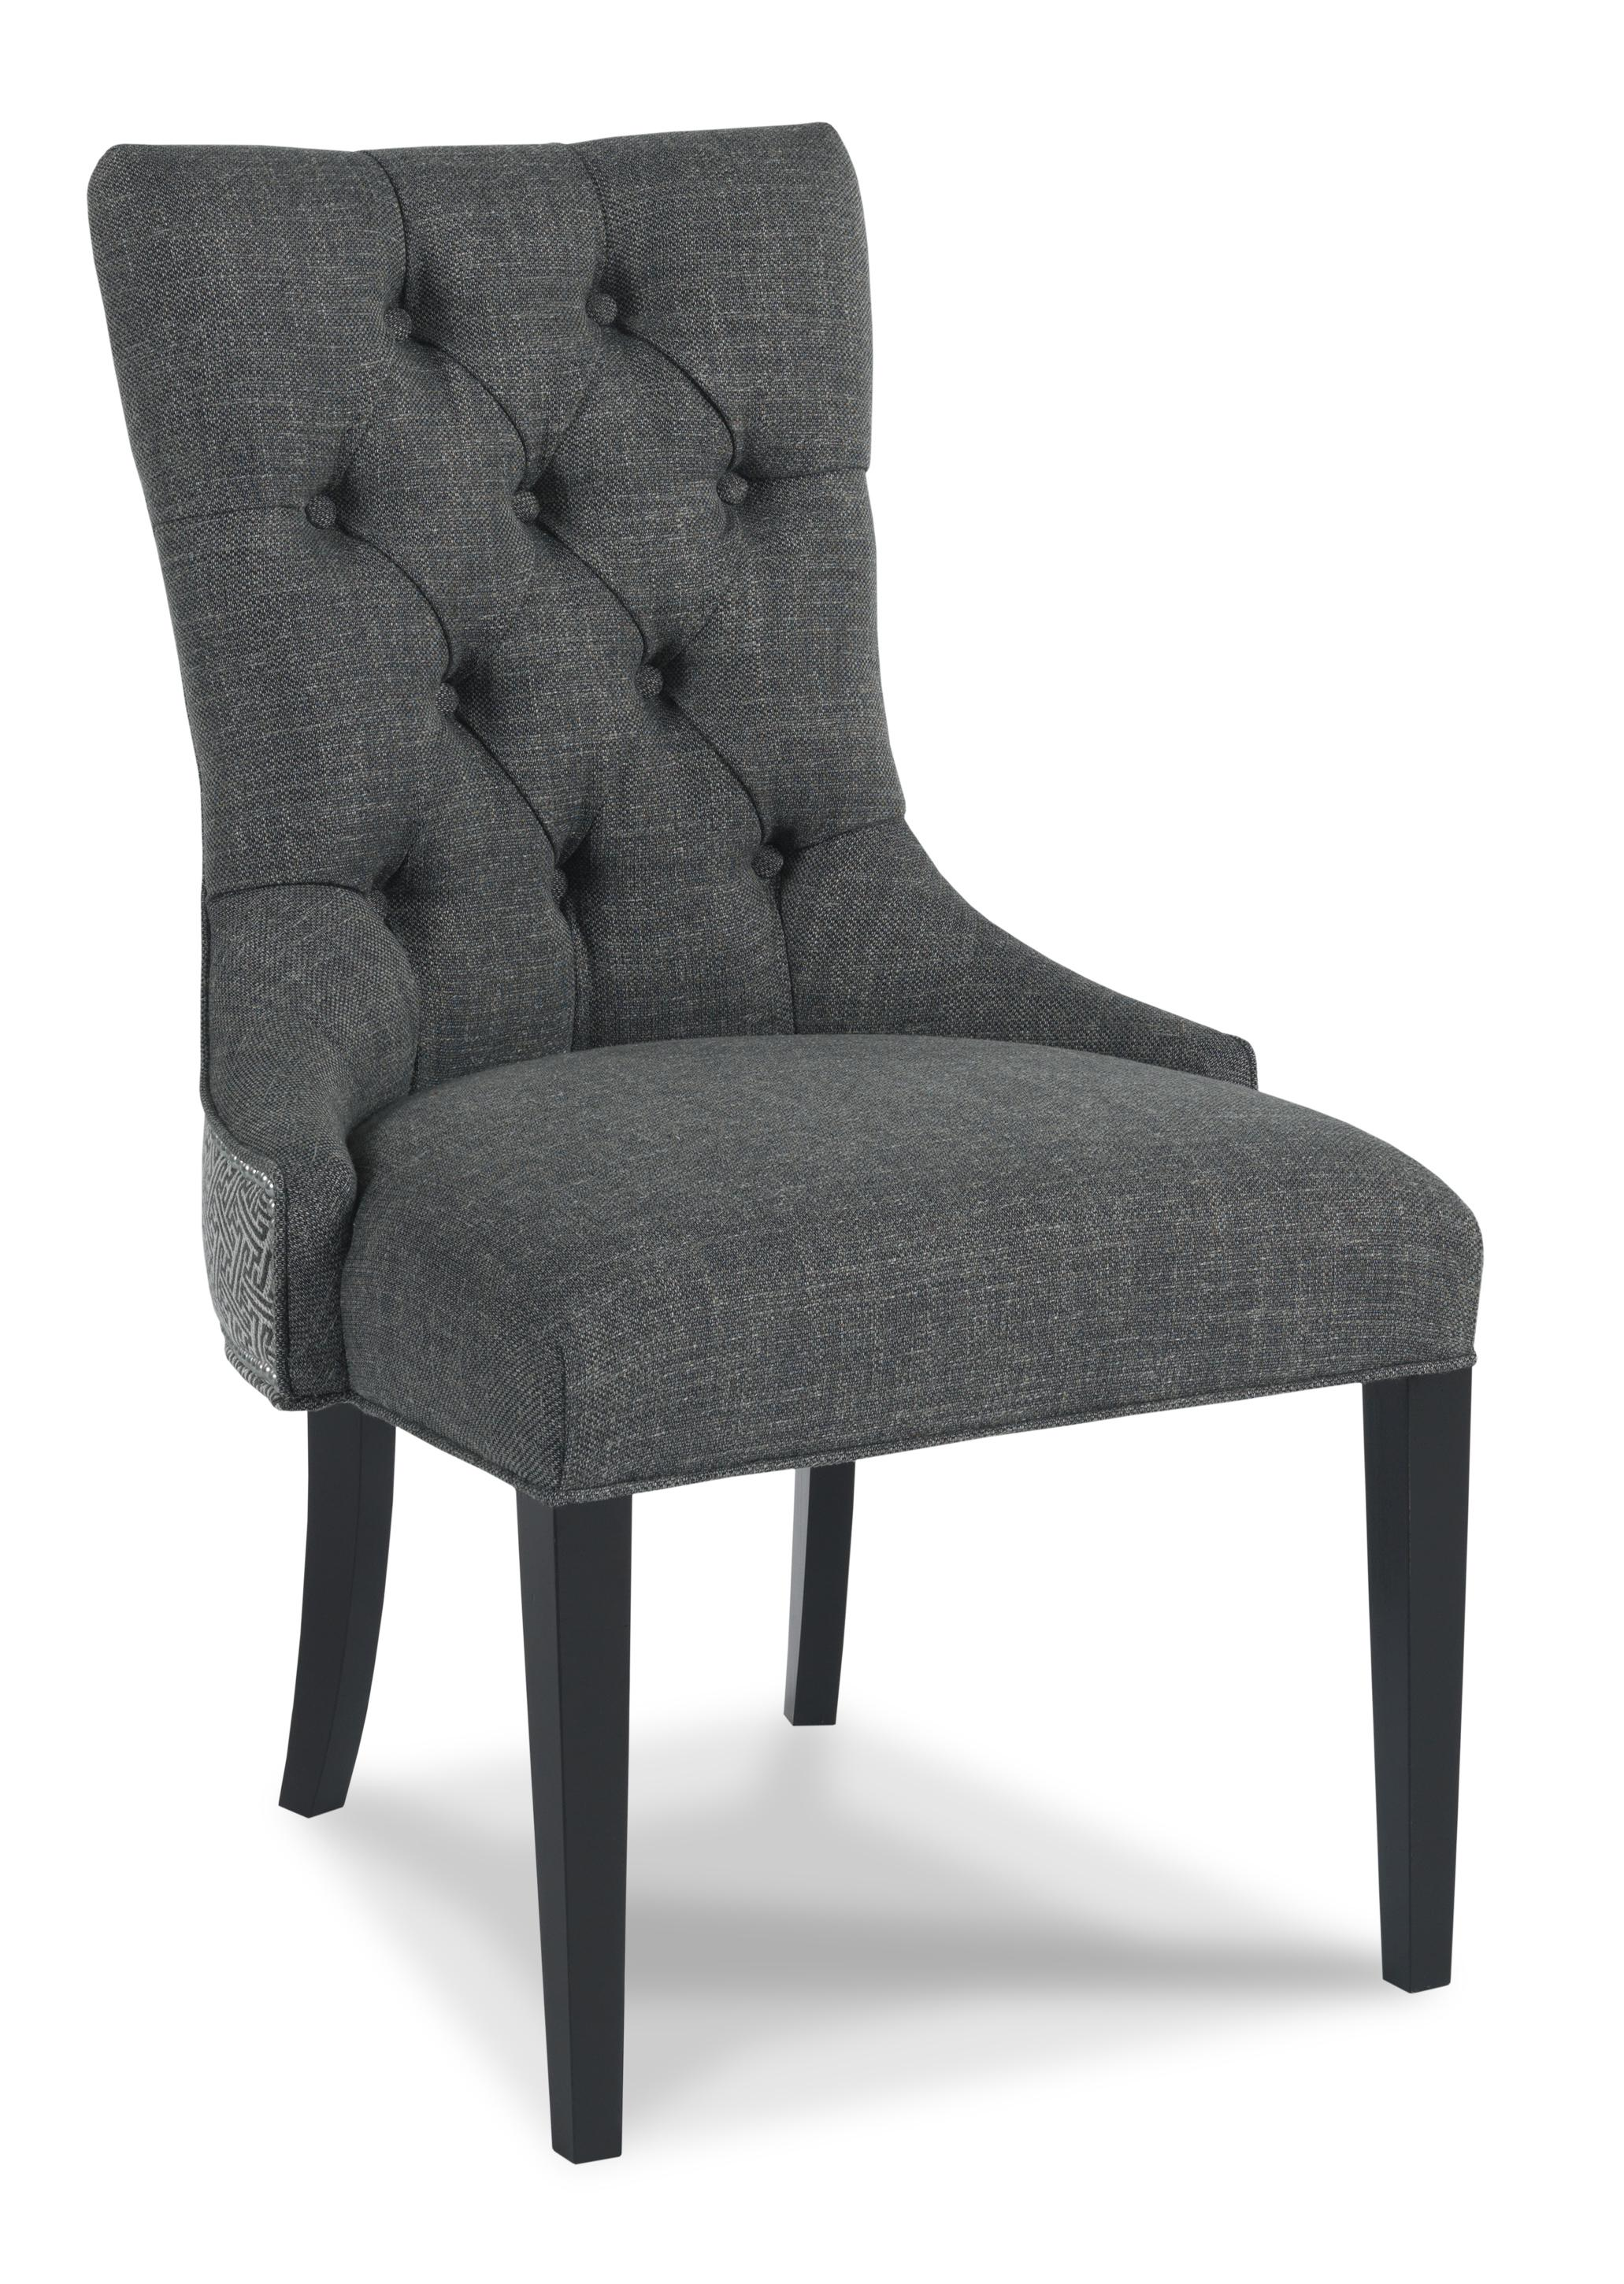 Traditional Upholstered Dining Chairs ~ Sam moore walden traditional upholstered button